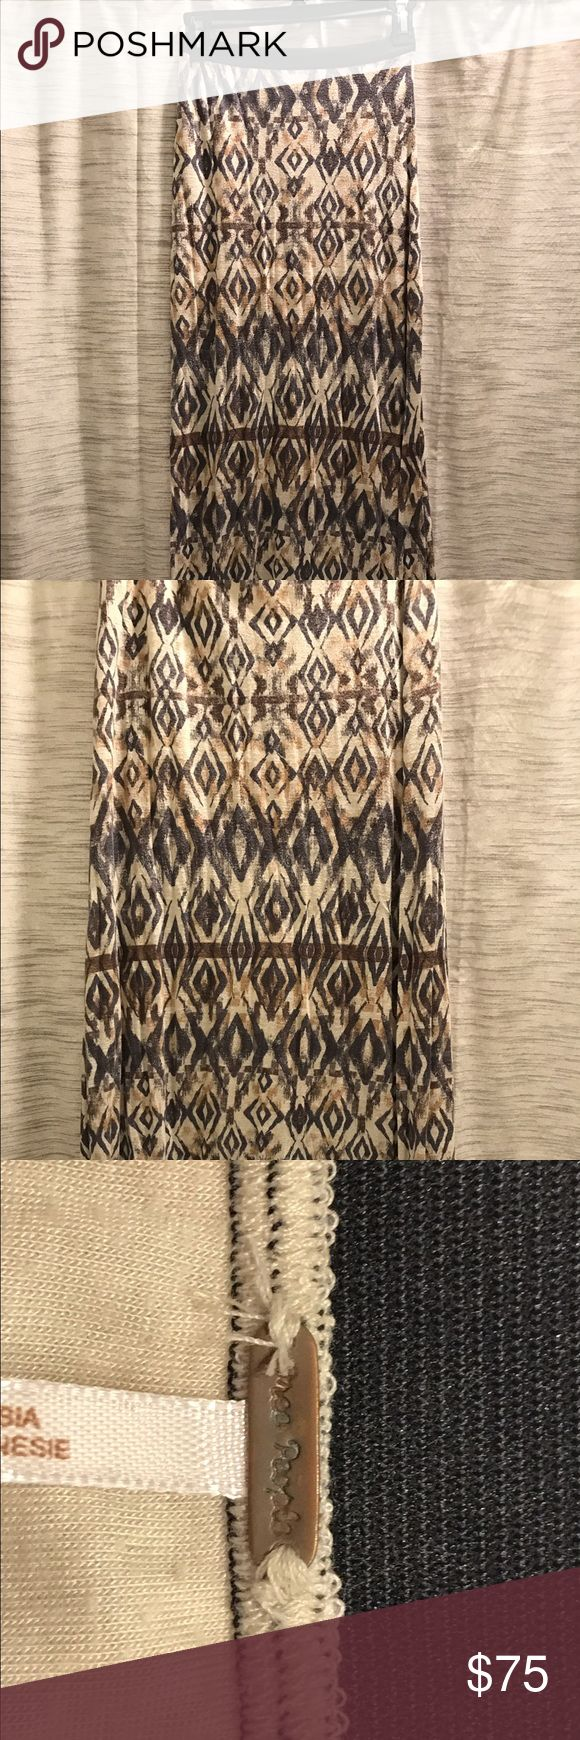 Free People Maxi skirt with slit on the side Free People tribal Maxi skirt Free People Skirts Maxi